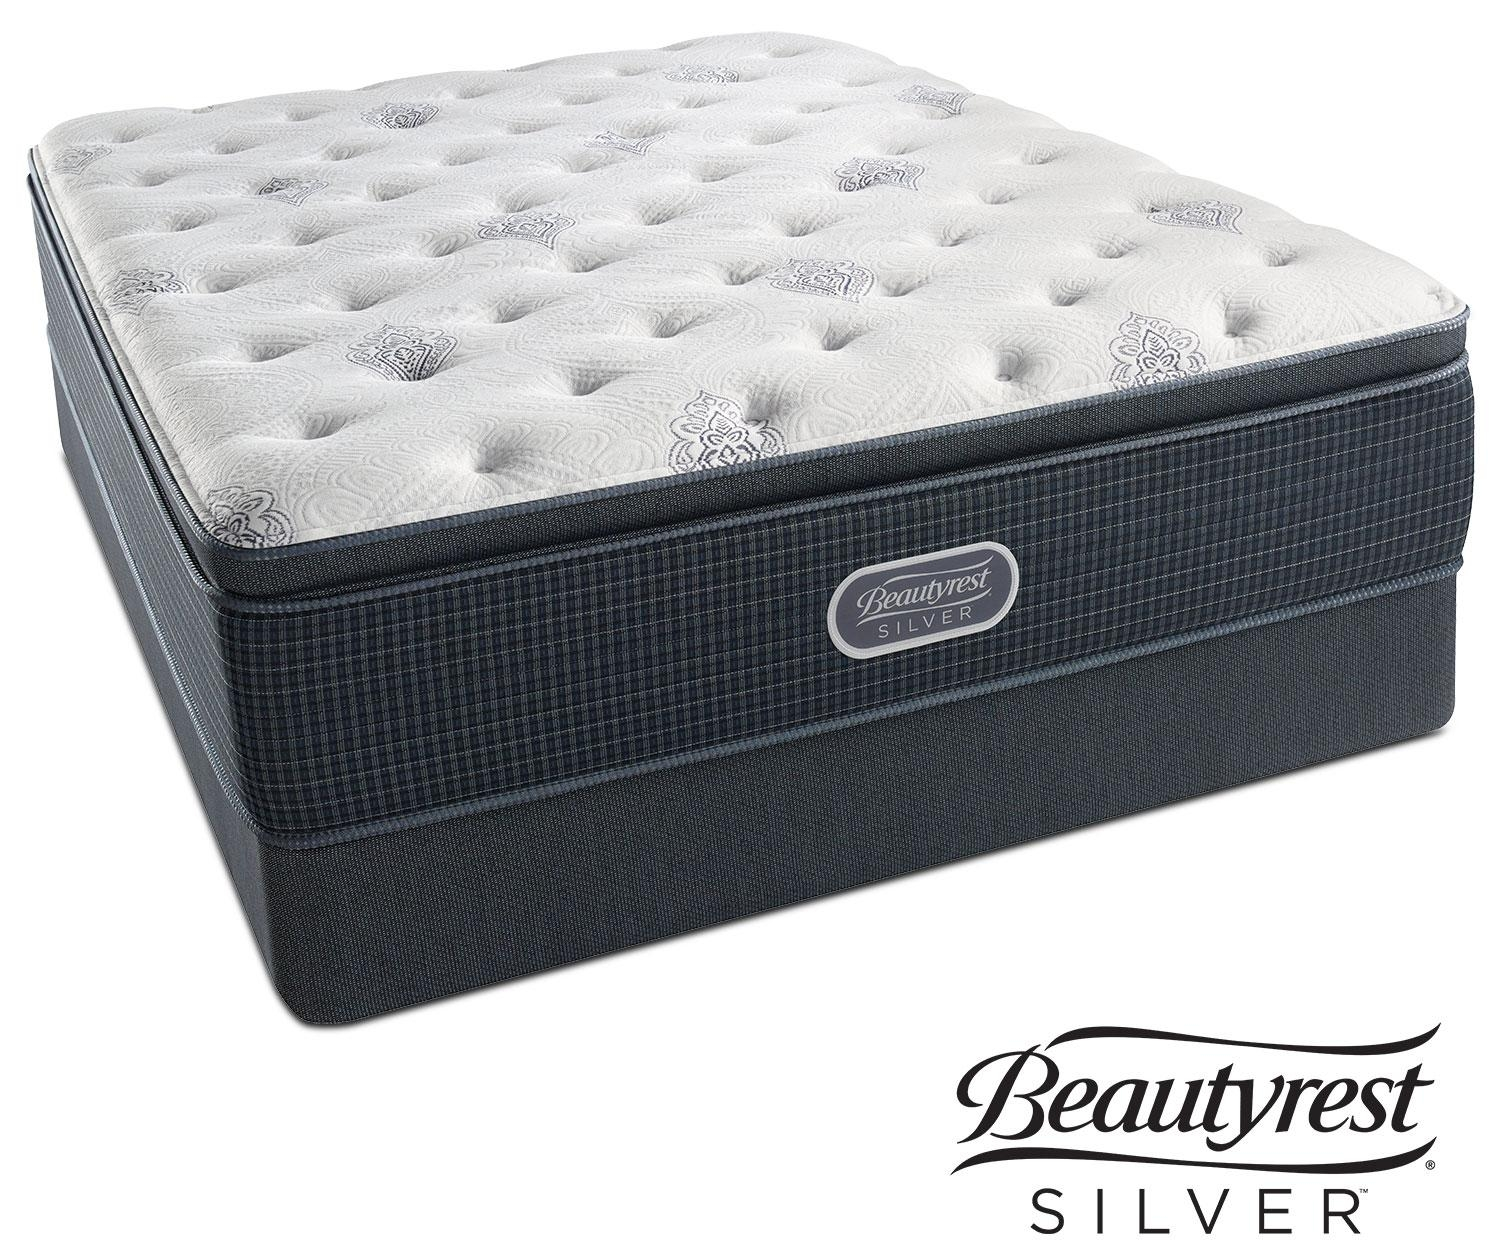 Queen Mattress Sets | Value City Furniture with Queen Mattress Sets